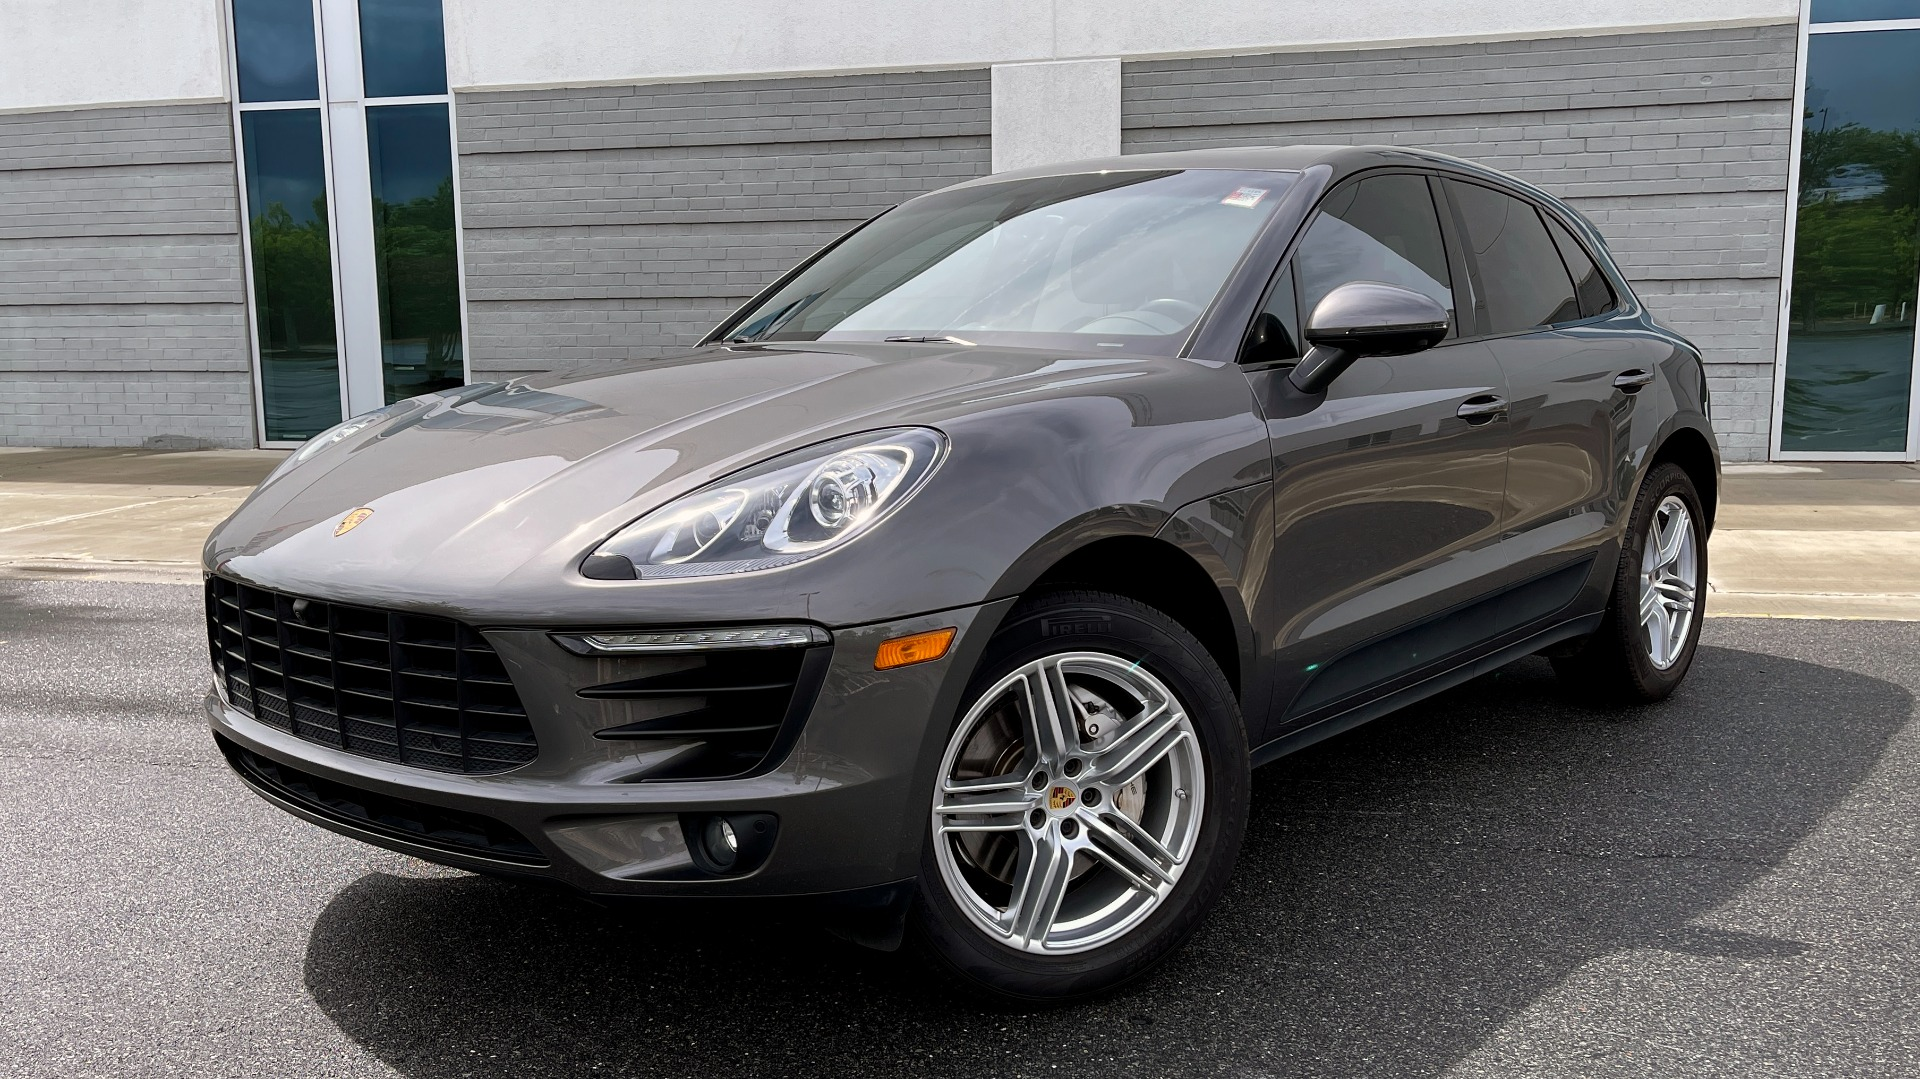 Used 2016 Porsche MACAN S PREMIUM PLUS / AWD / NAV / BOSE / SUNROOF / LCA / PARK ASST / INFOTAINMEN for sale $45,256 at Formula Imports in Charlotte NC 28227 1